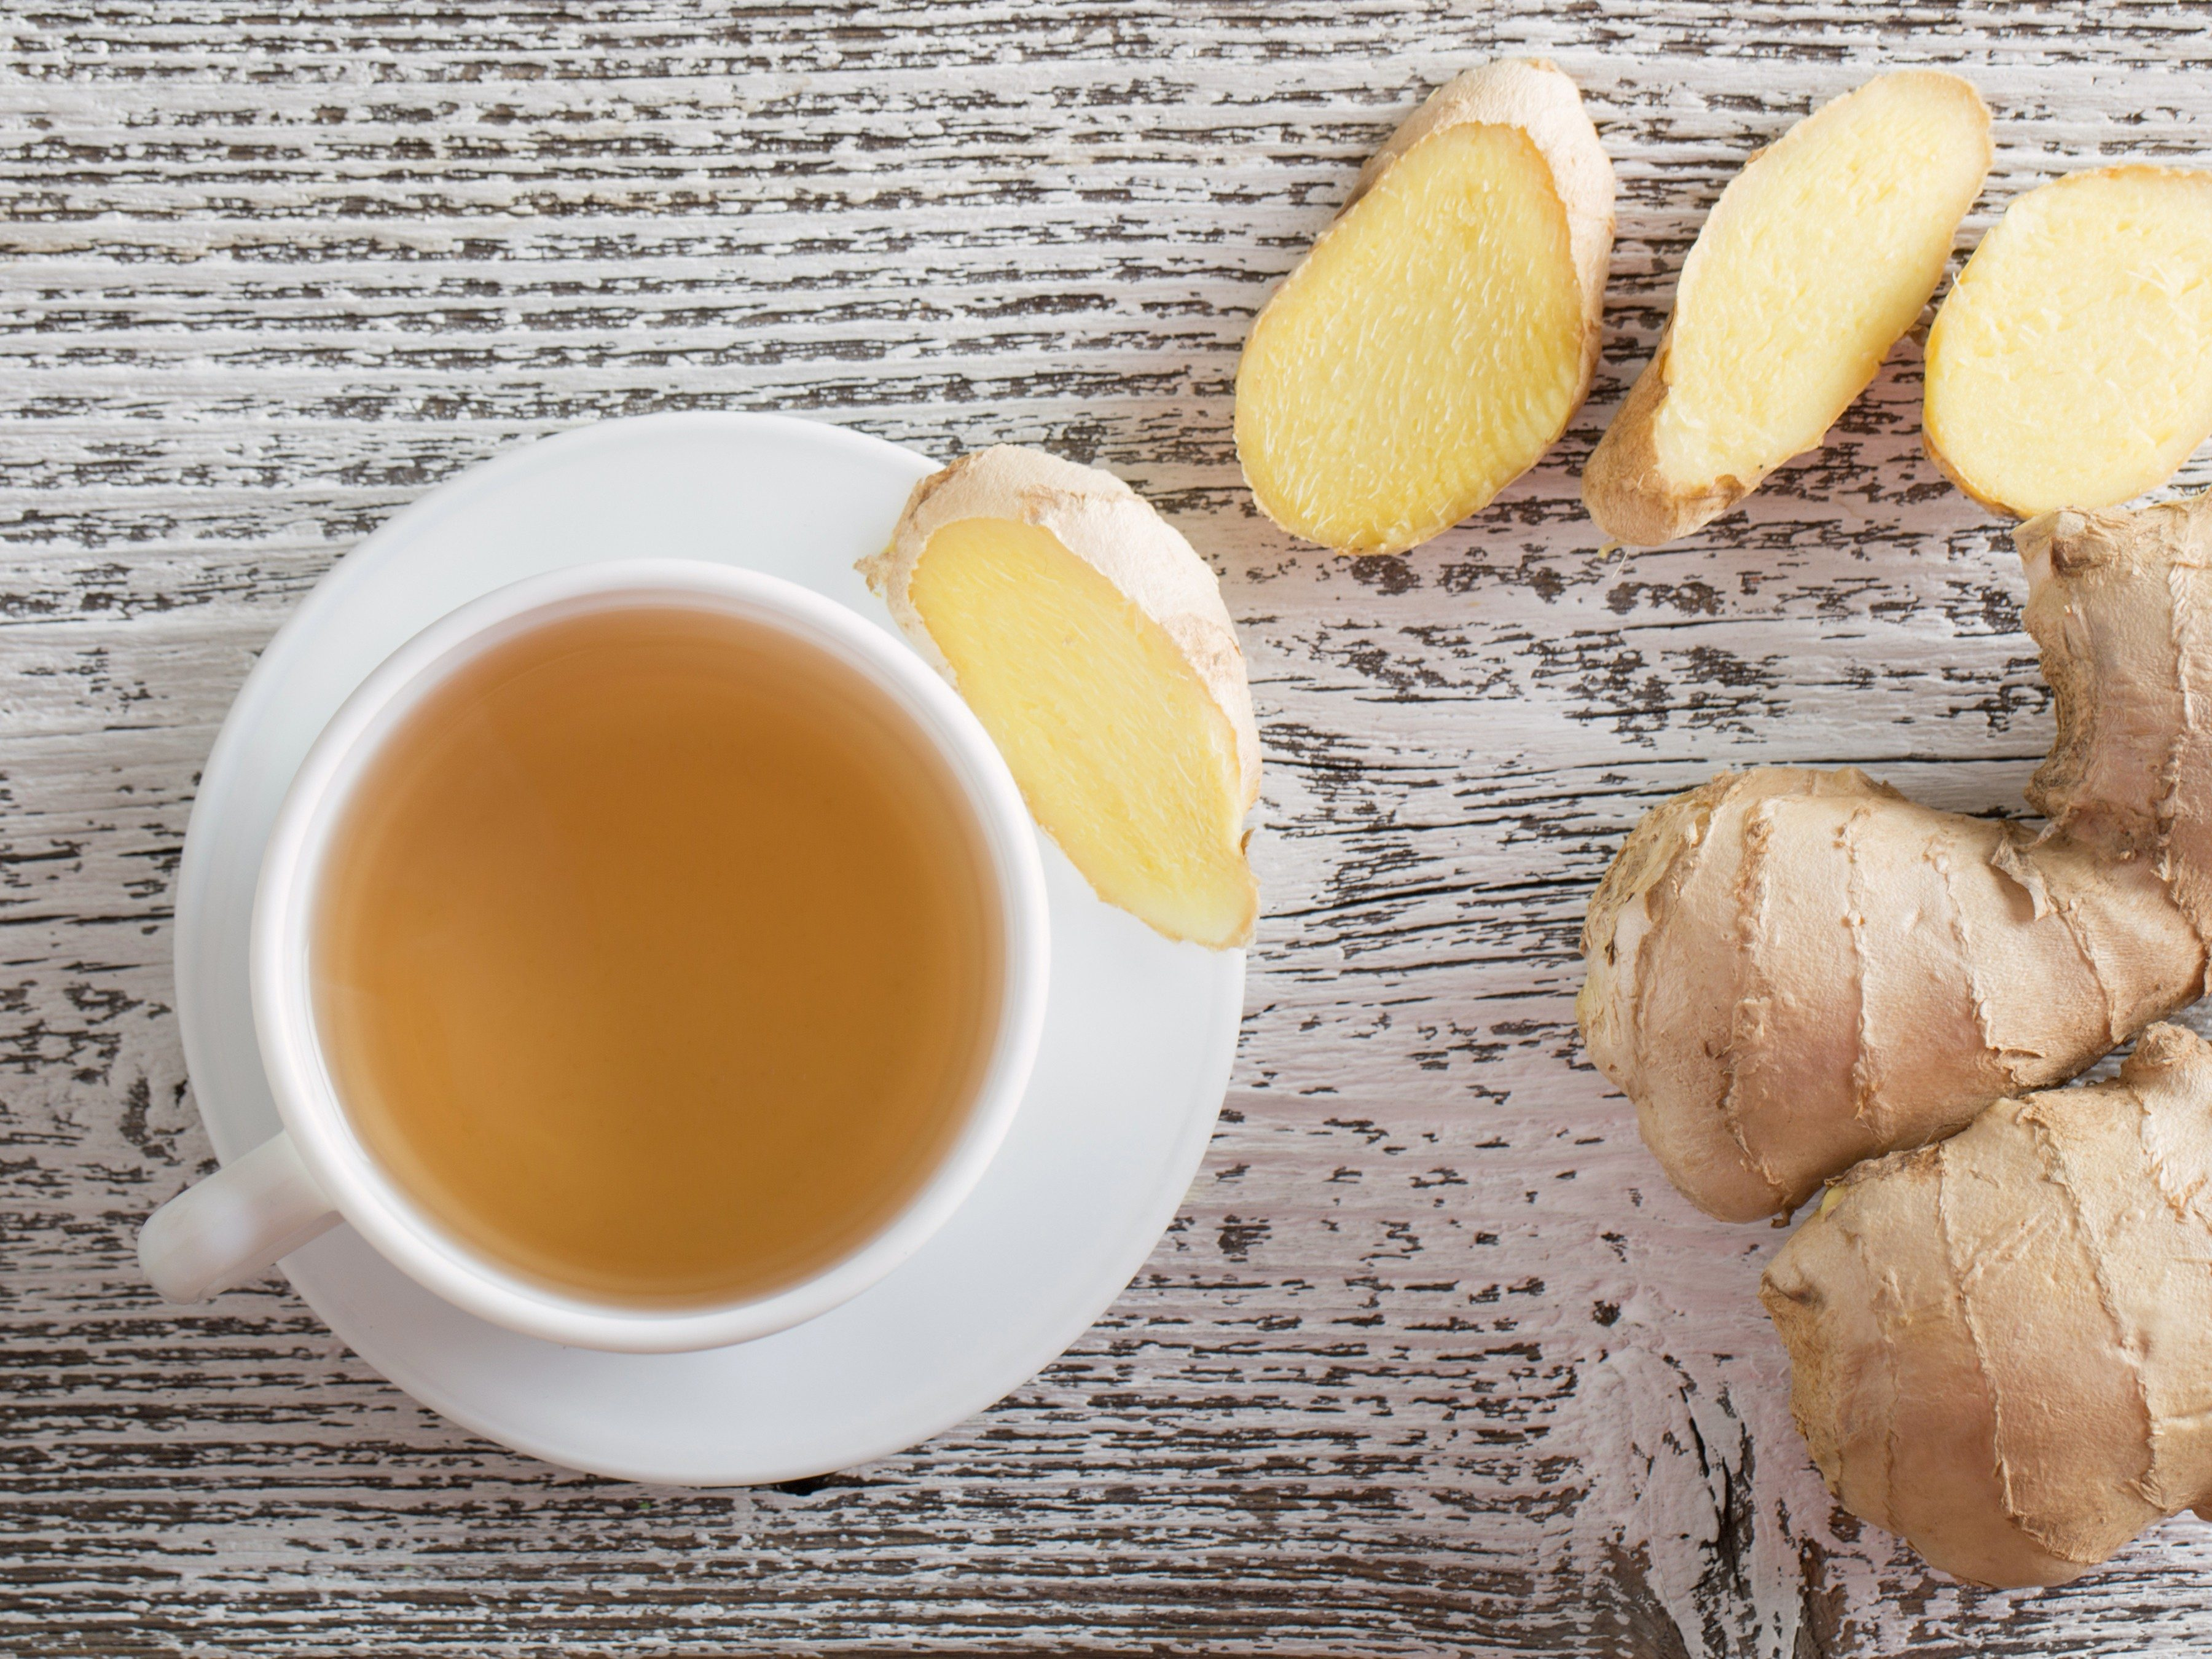 8 of the best home remedies to relieve indigestion